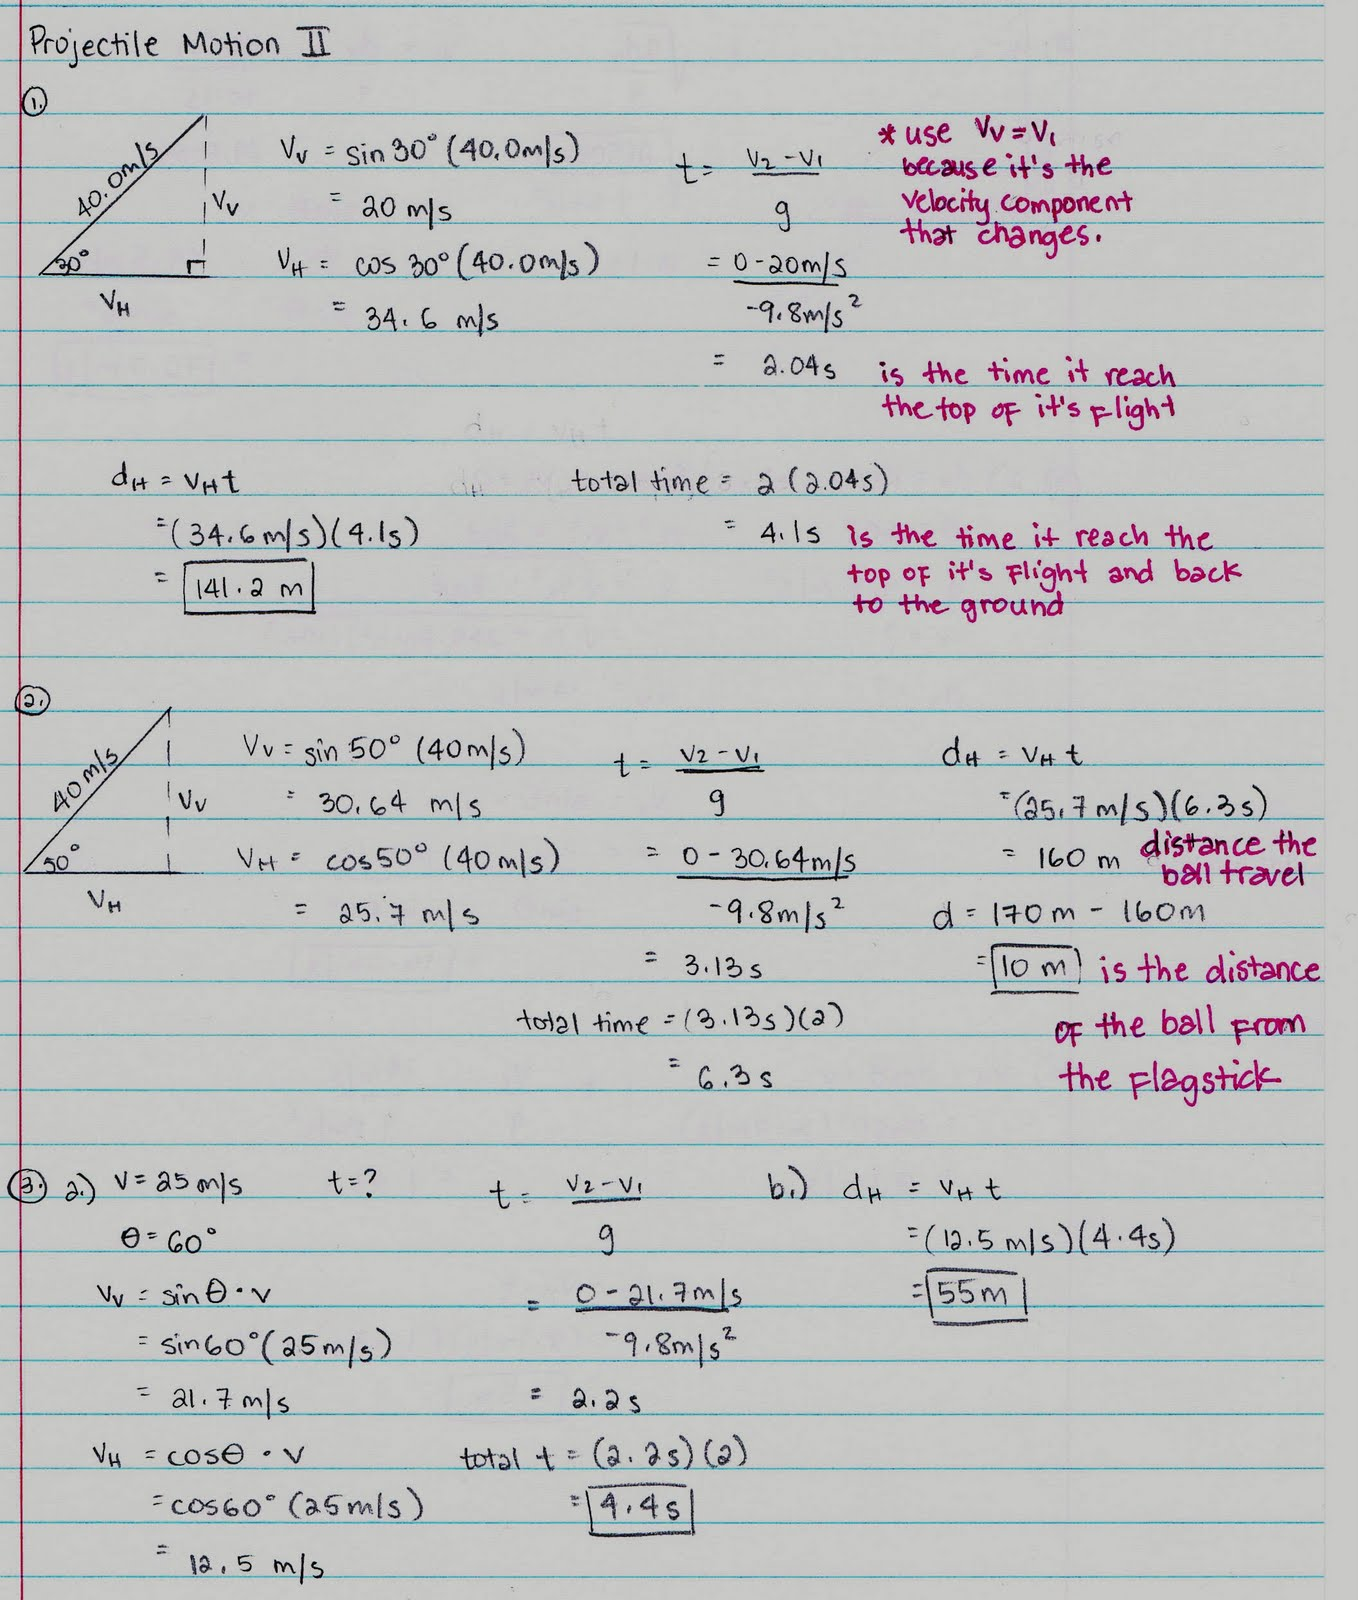 Worksheets Projectile Motion Worksheet With Answers physics1202 2010 projectile motion continued ii